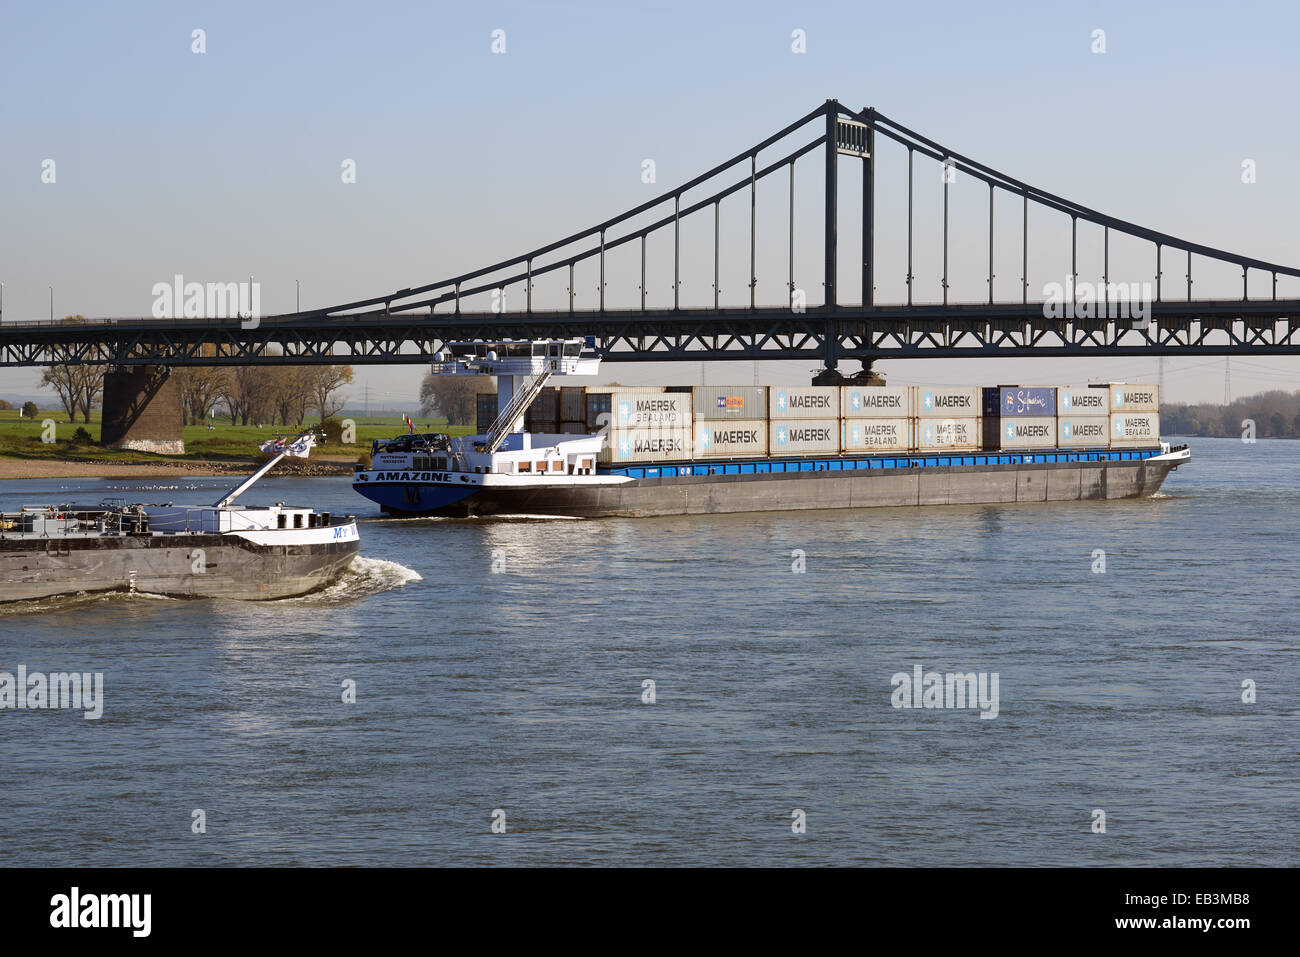 Amazon container barge, river Rhine, Krefeld, Germany. - Stock Image